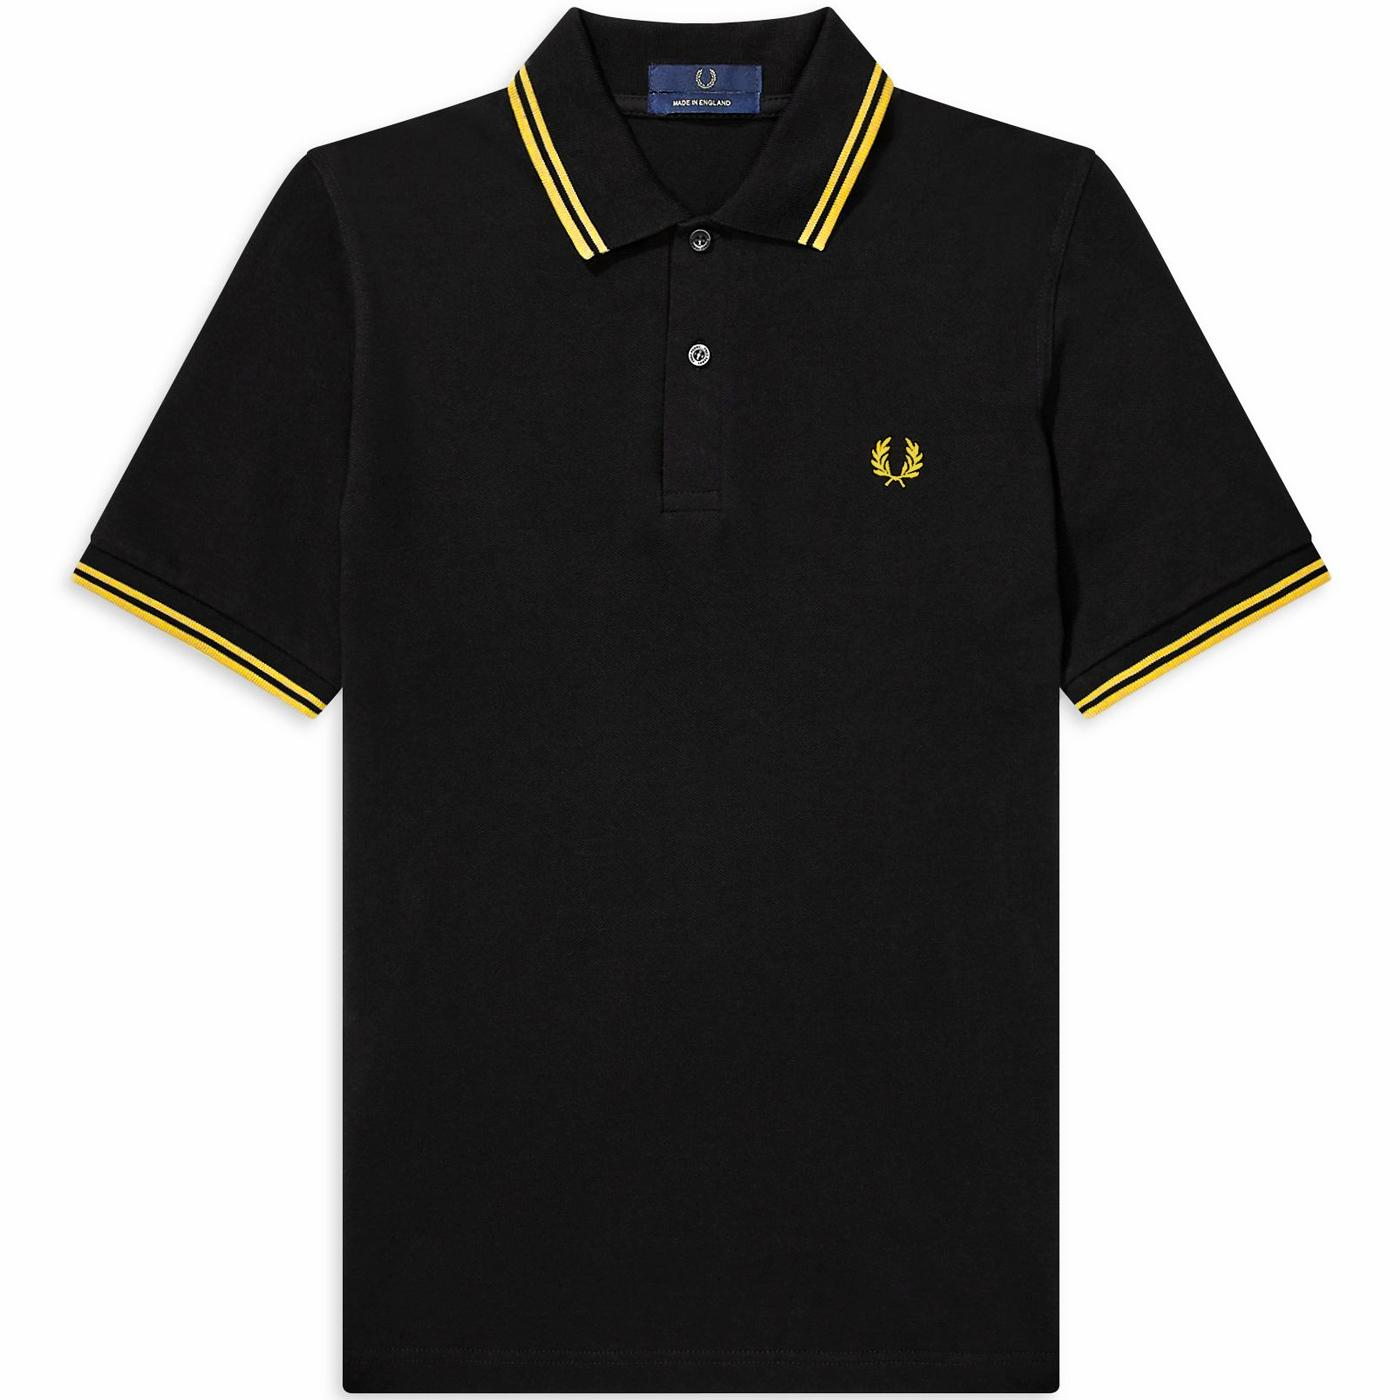 FRED PERRY M3600 Mod Twin Tipped Polo Shirt (B/Y)